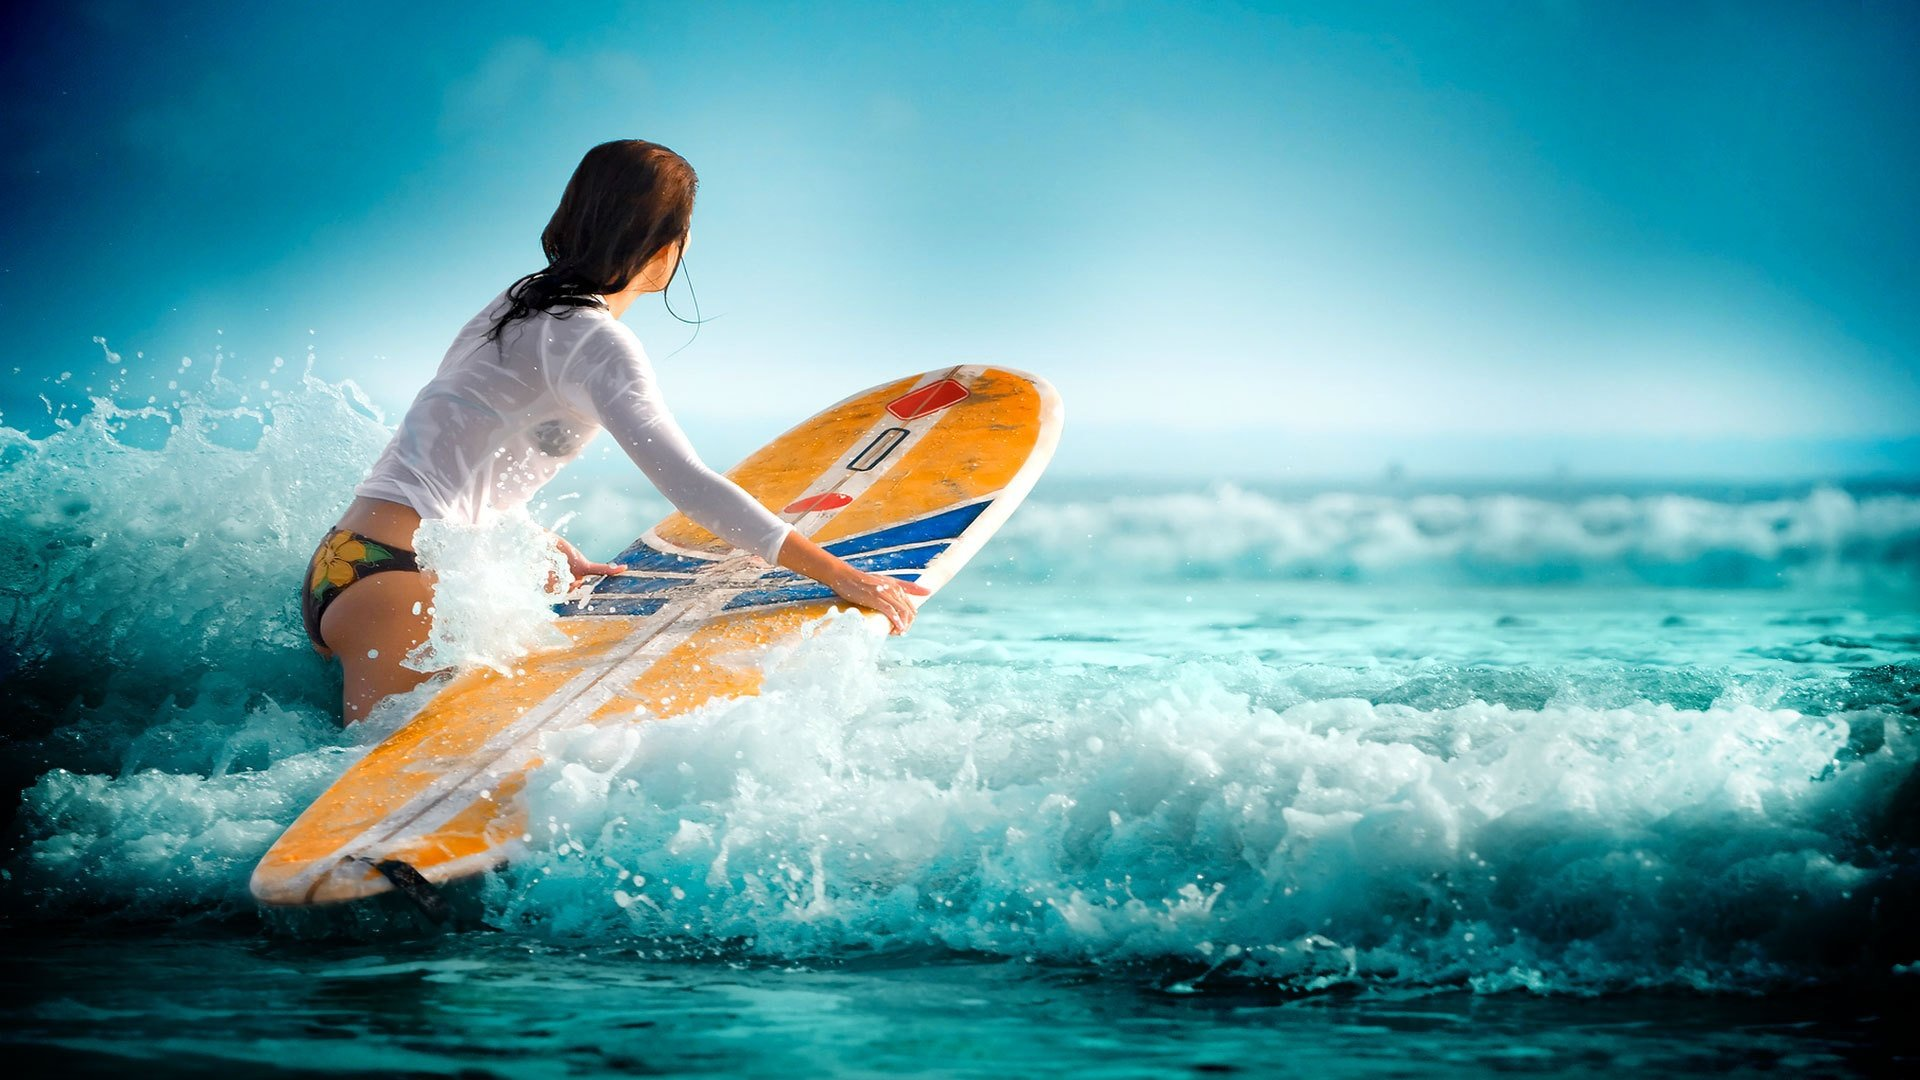 Surfing   Wallpaper High Definition High Quality Widescreen 1920x1080